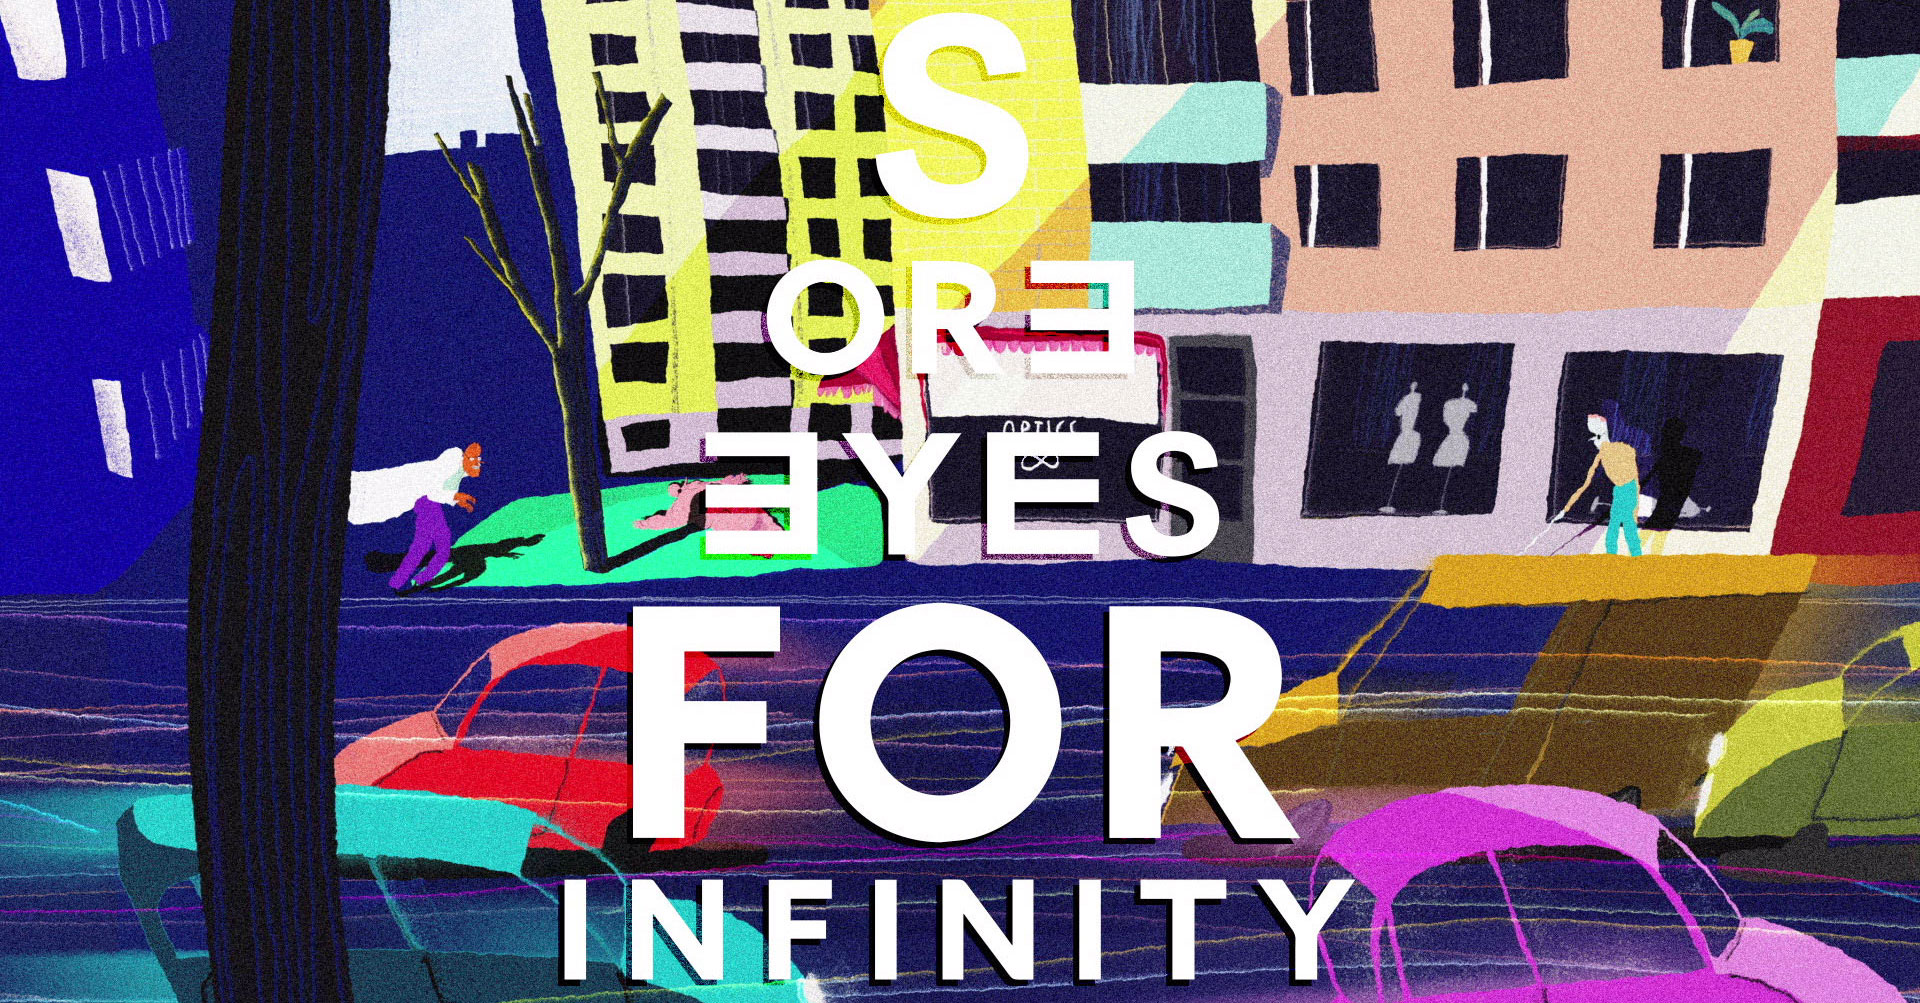 Sore Eyes for Infinity